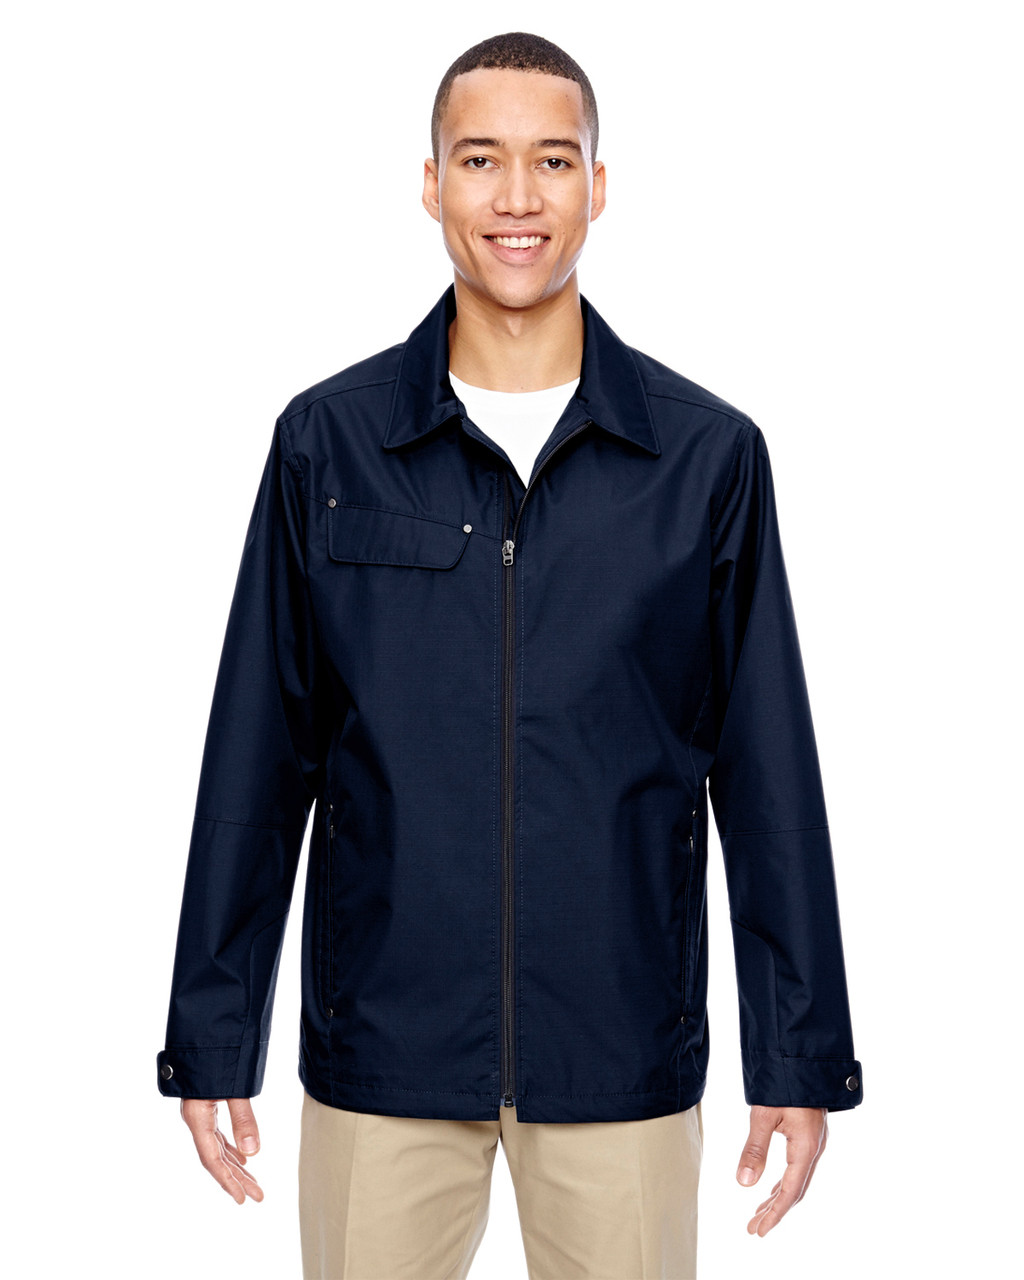 Navy - 88218 North End Excursion Ambassador Lightweight Jacket with Fold Down Collar | Blankclothing.ca